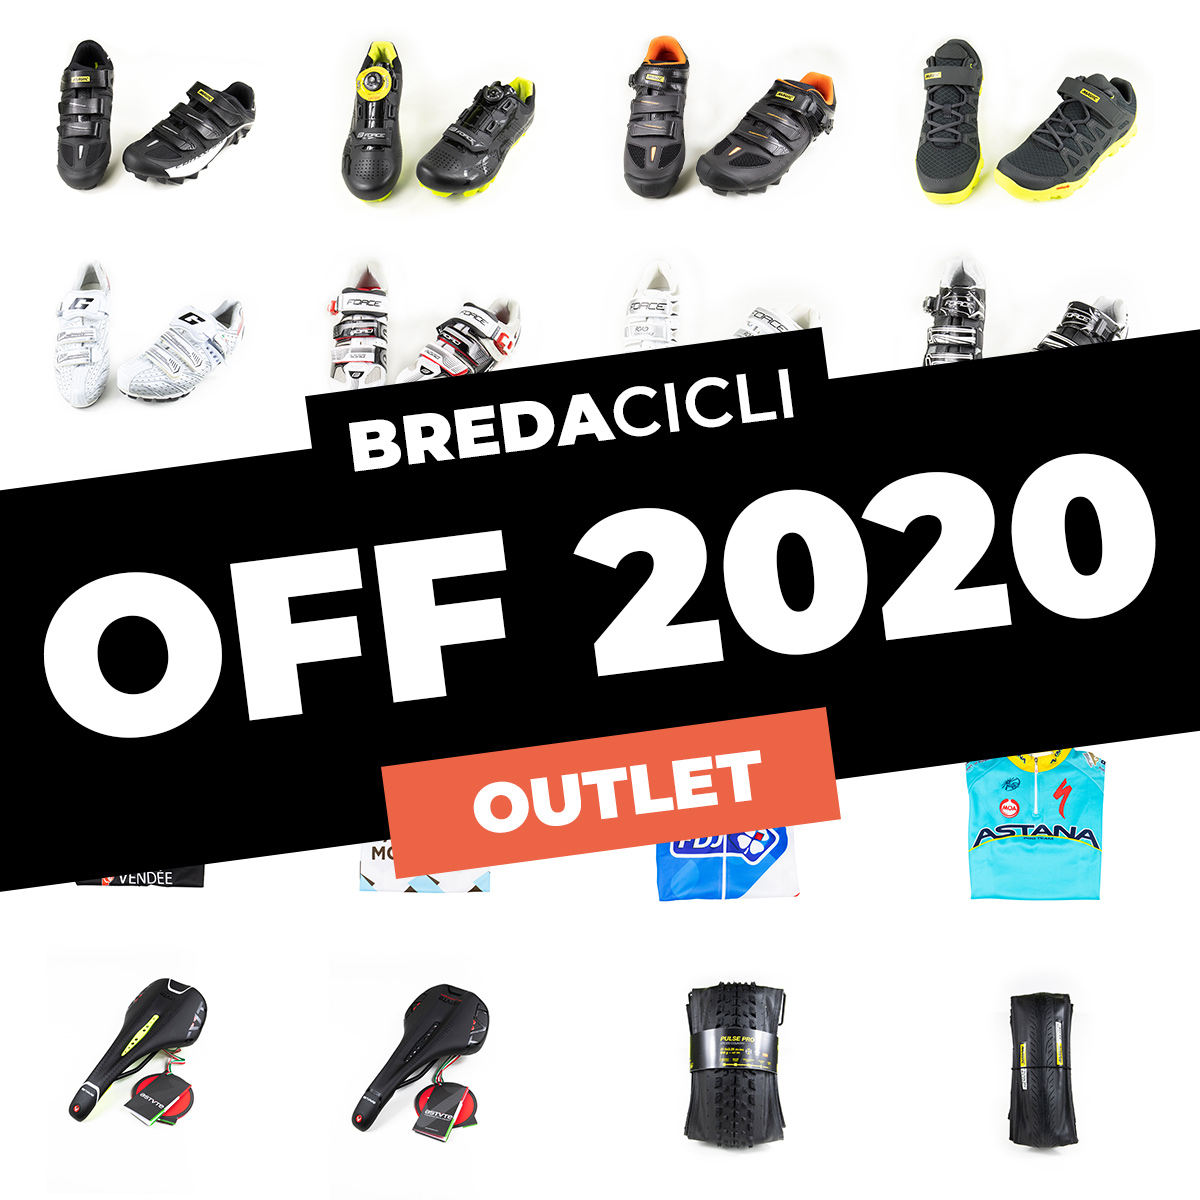 bredacicli-promo-off-2020-outlet